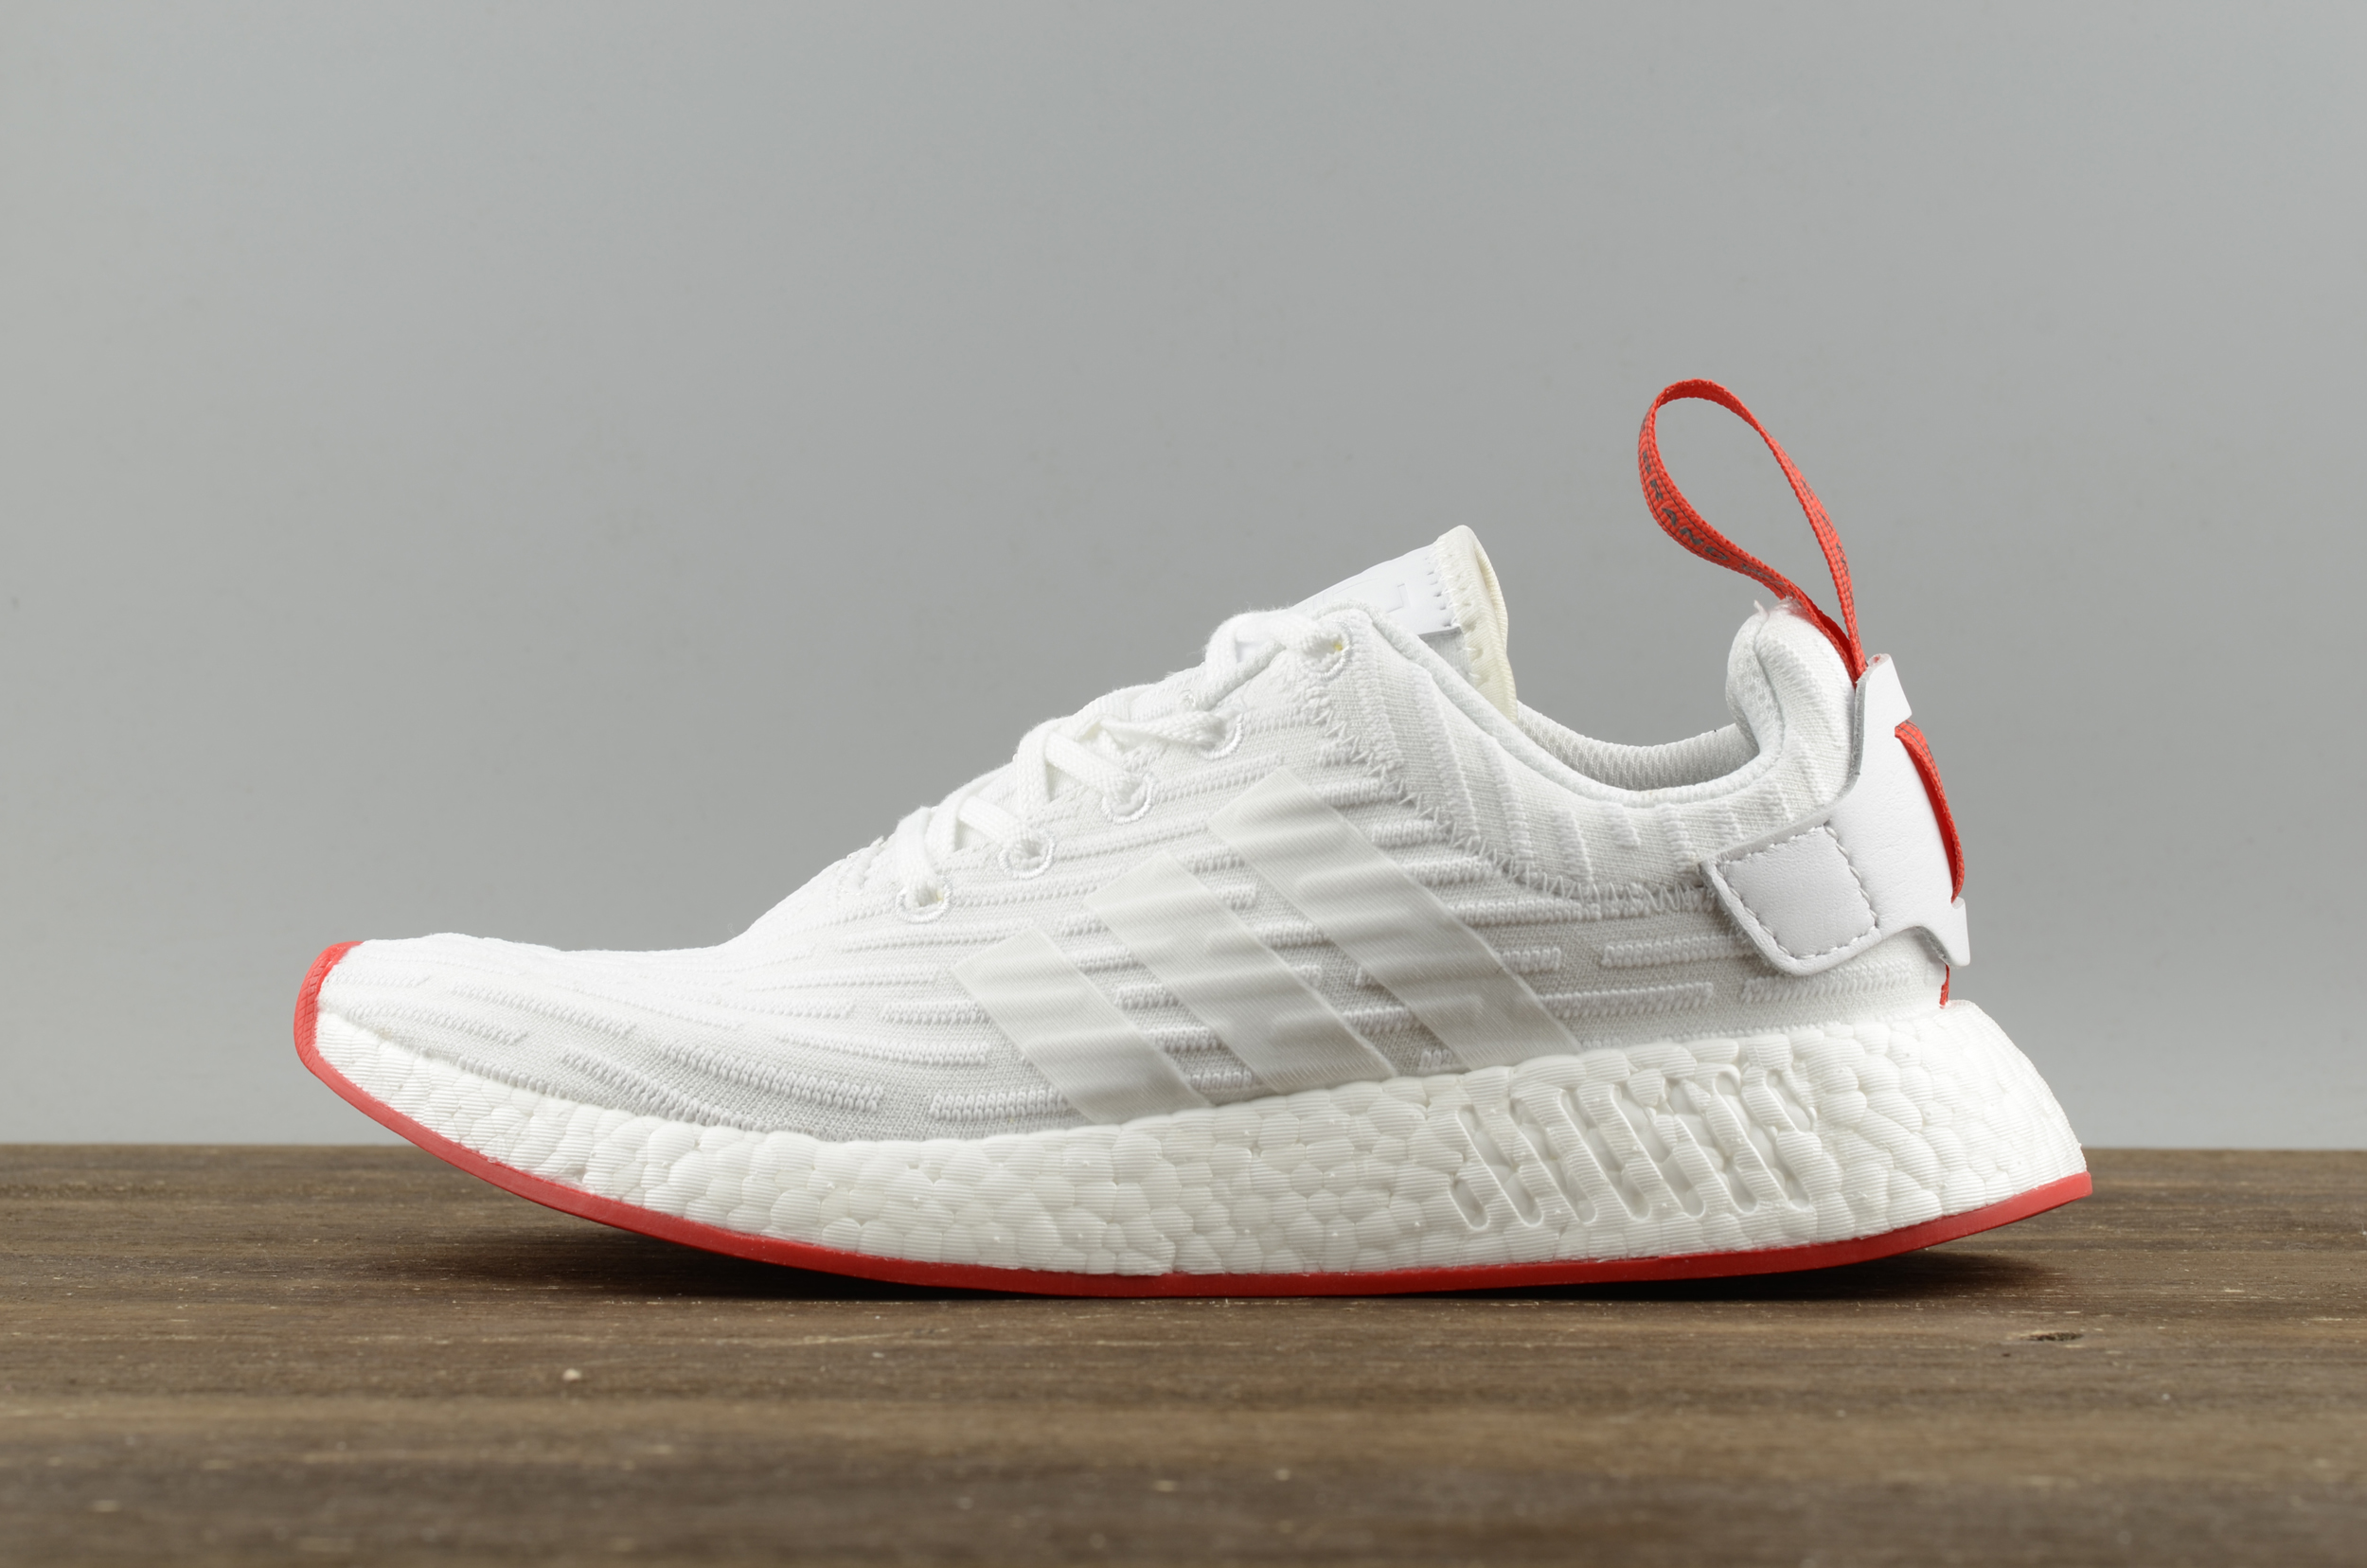 81d82fc06 2018 adidas NMD R2 PK White Red BA7253 adidas NMD Running Boost For Sale